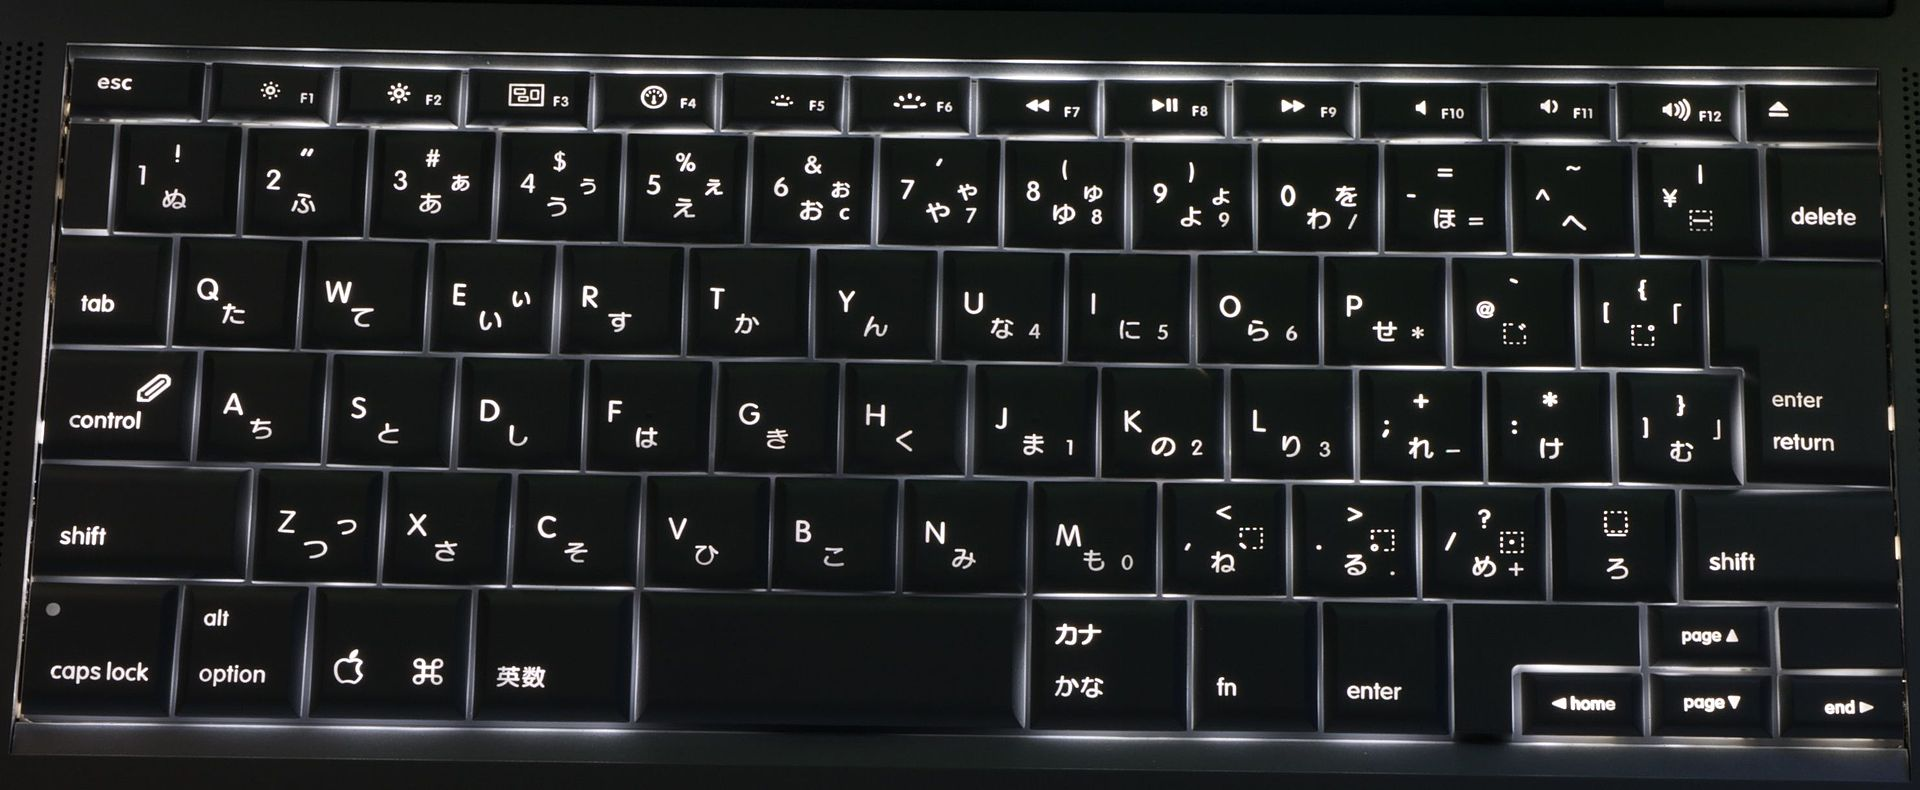 googled Japanese Keyboard and was not disappointed. : funny